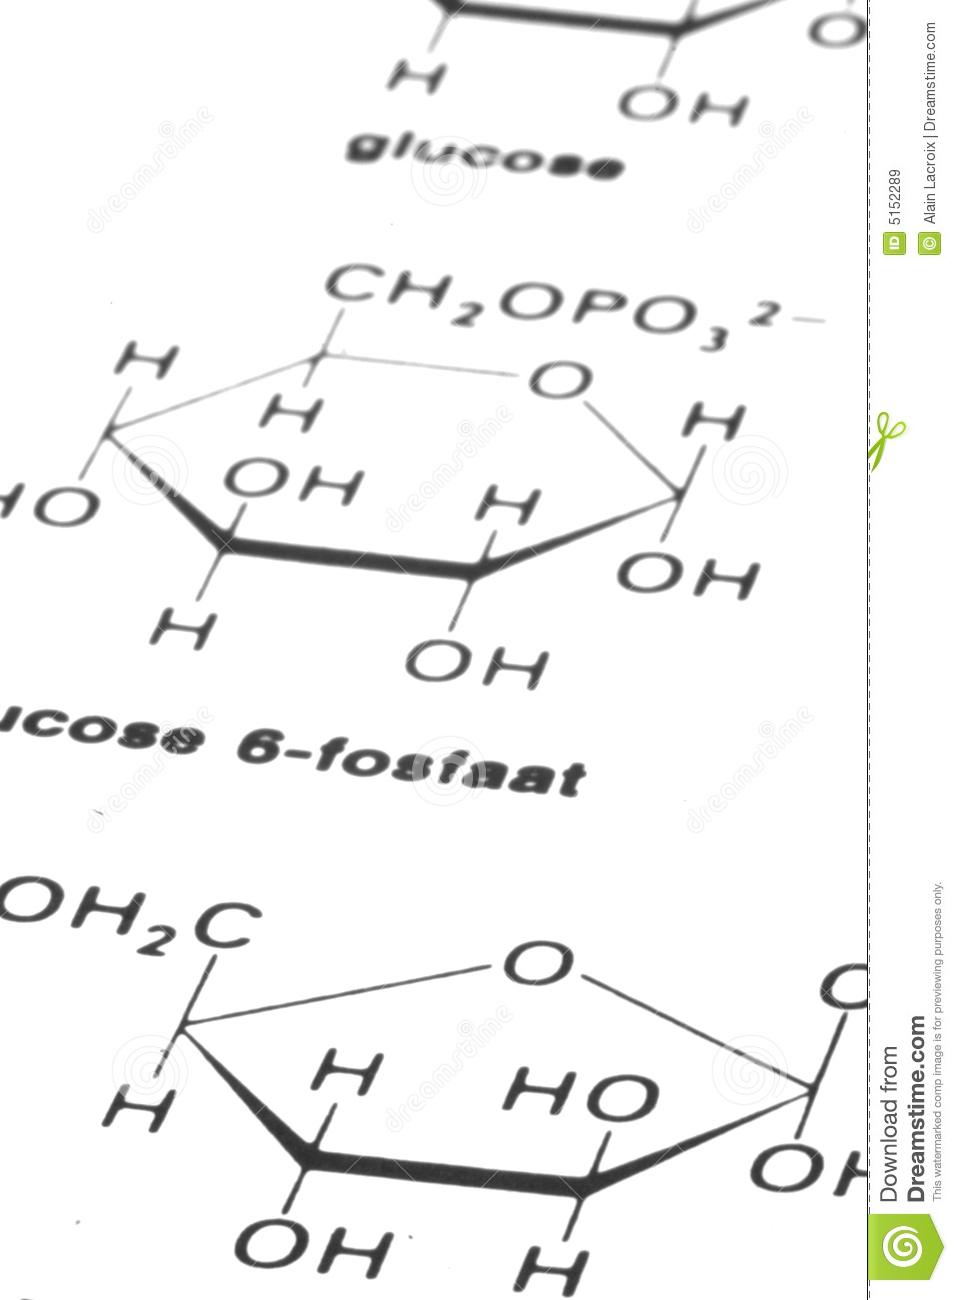 Chemistry formulas stock image. Image of classes, atomic